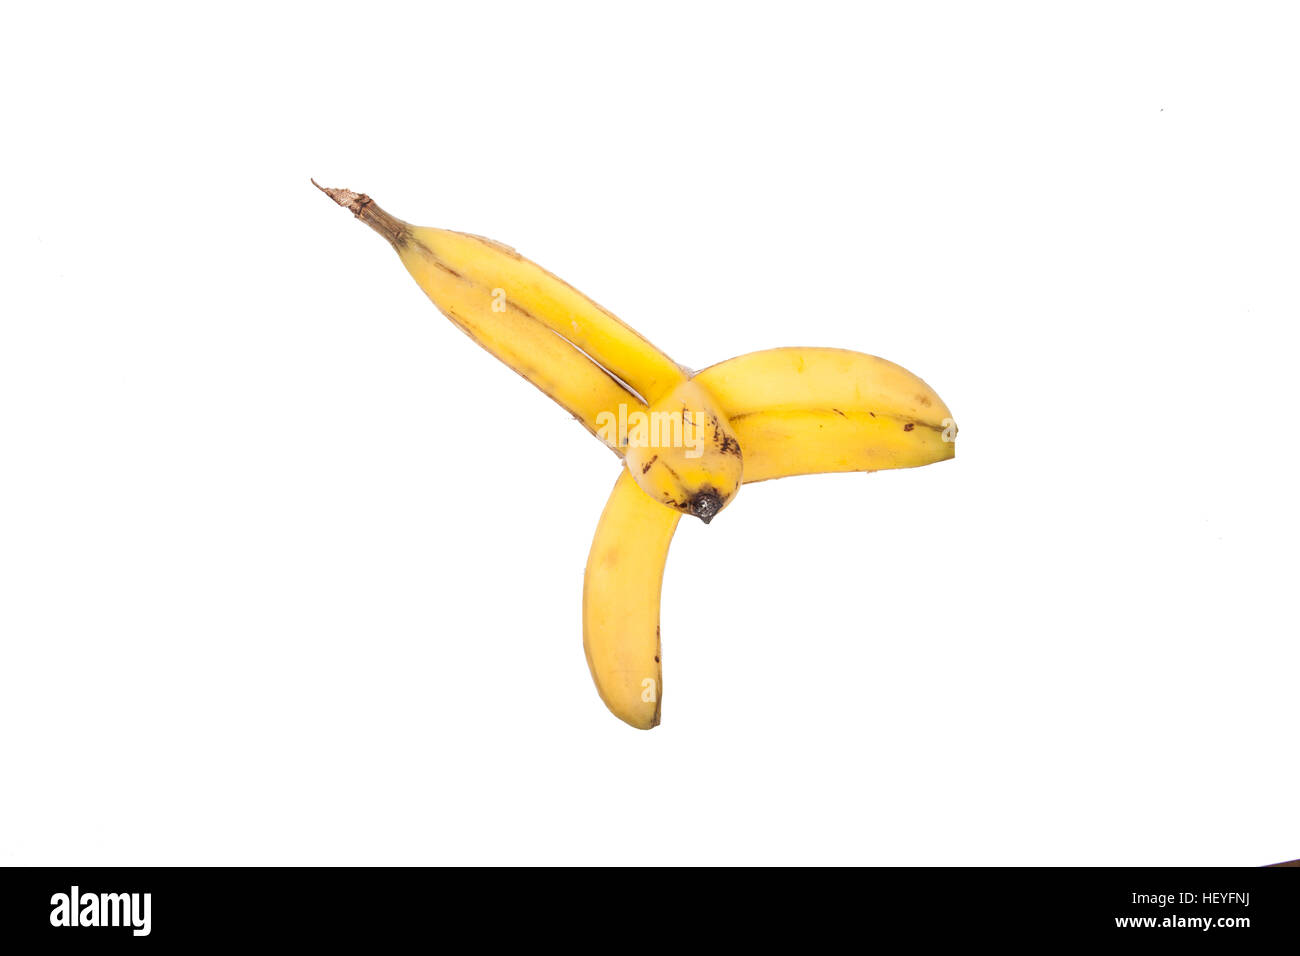 Banana peel isolated - Stock Image